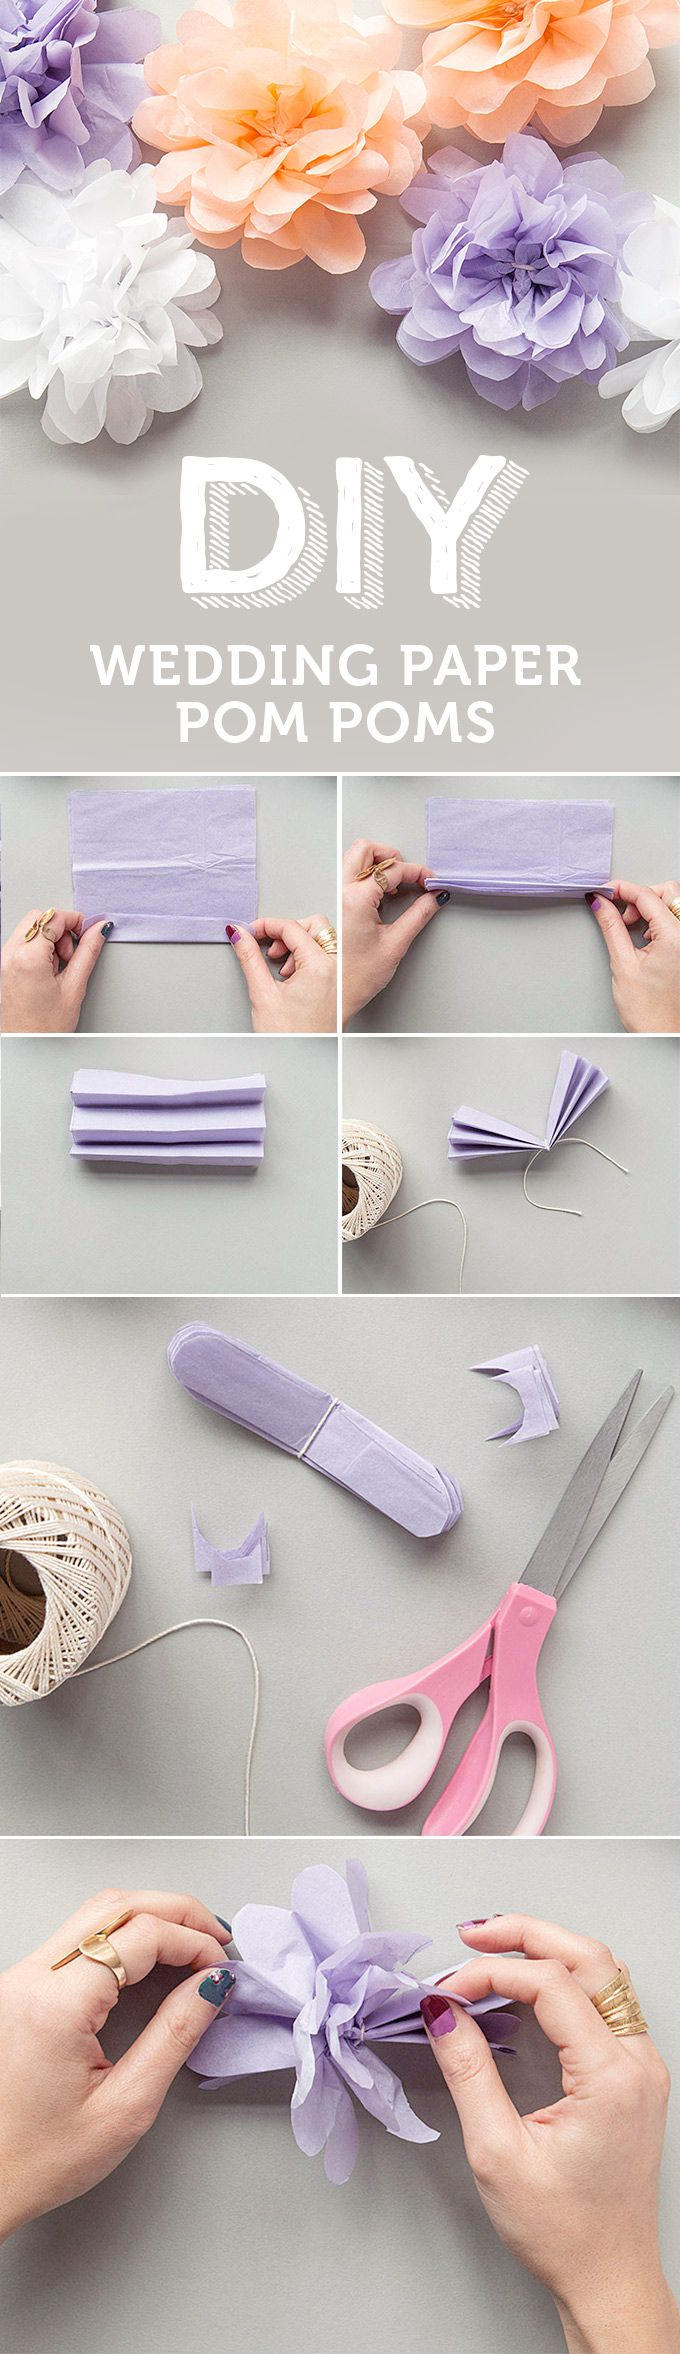 craft ideas for bridal shower favors%0A cover letter basics